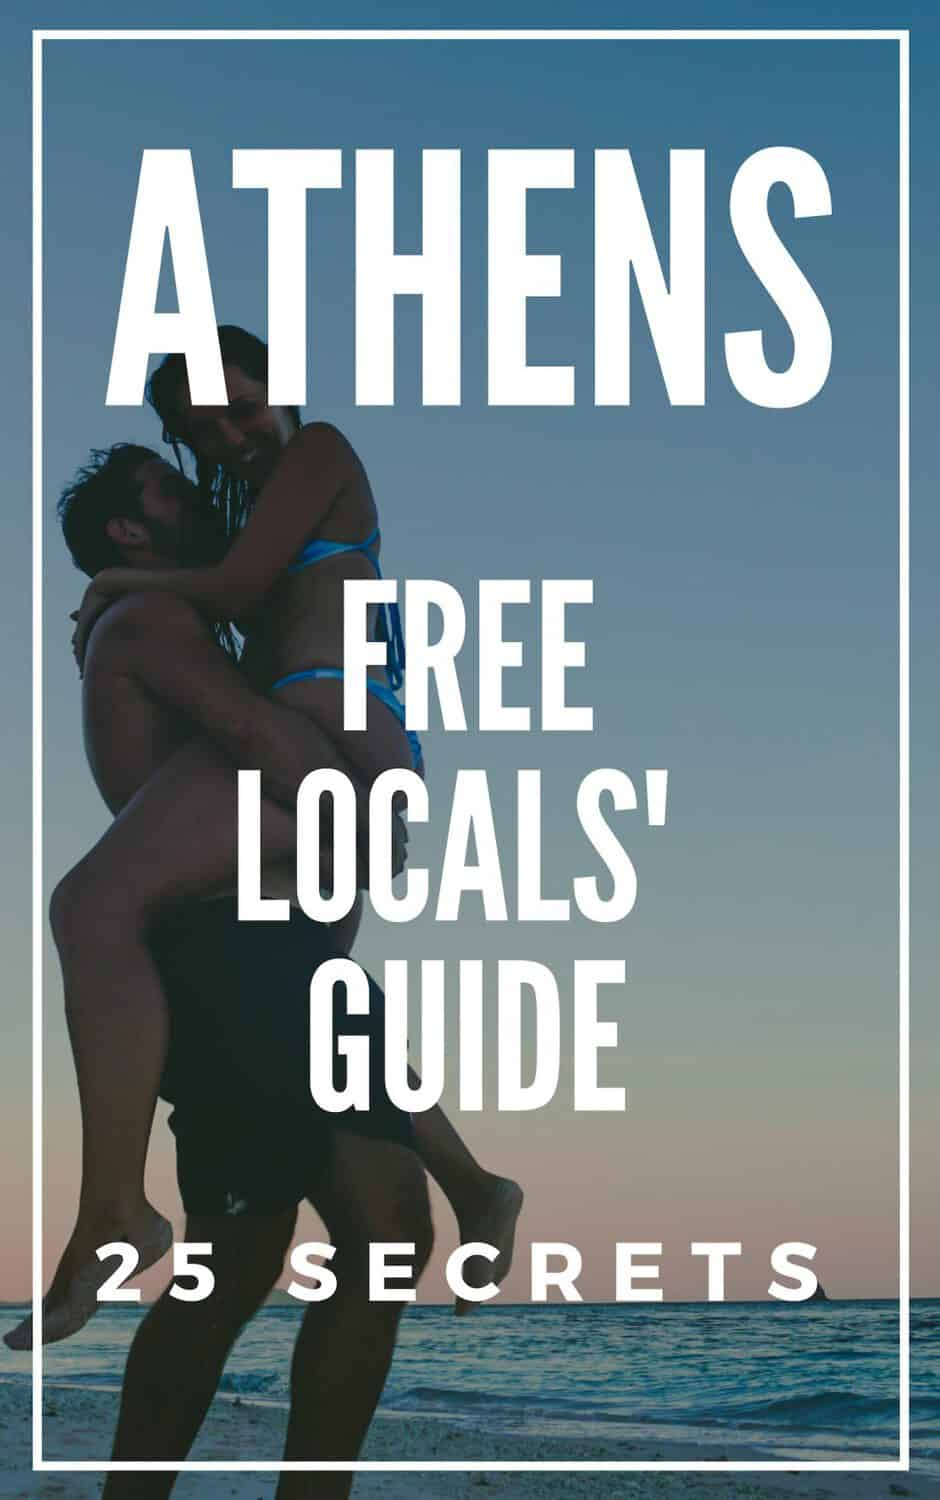 athens free travel guide 2019 things to do in athens